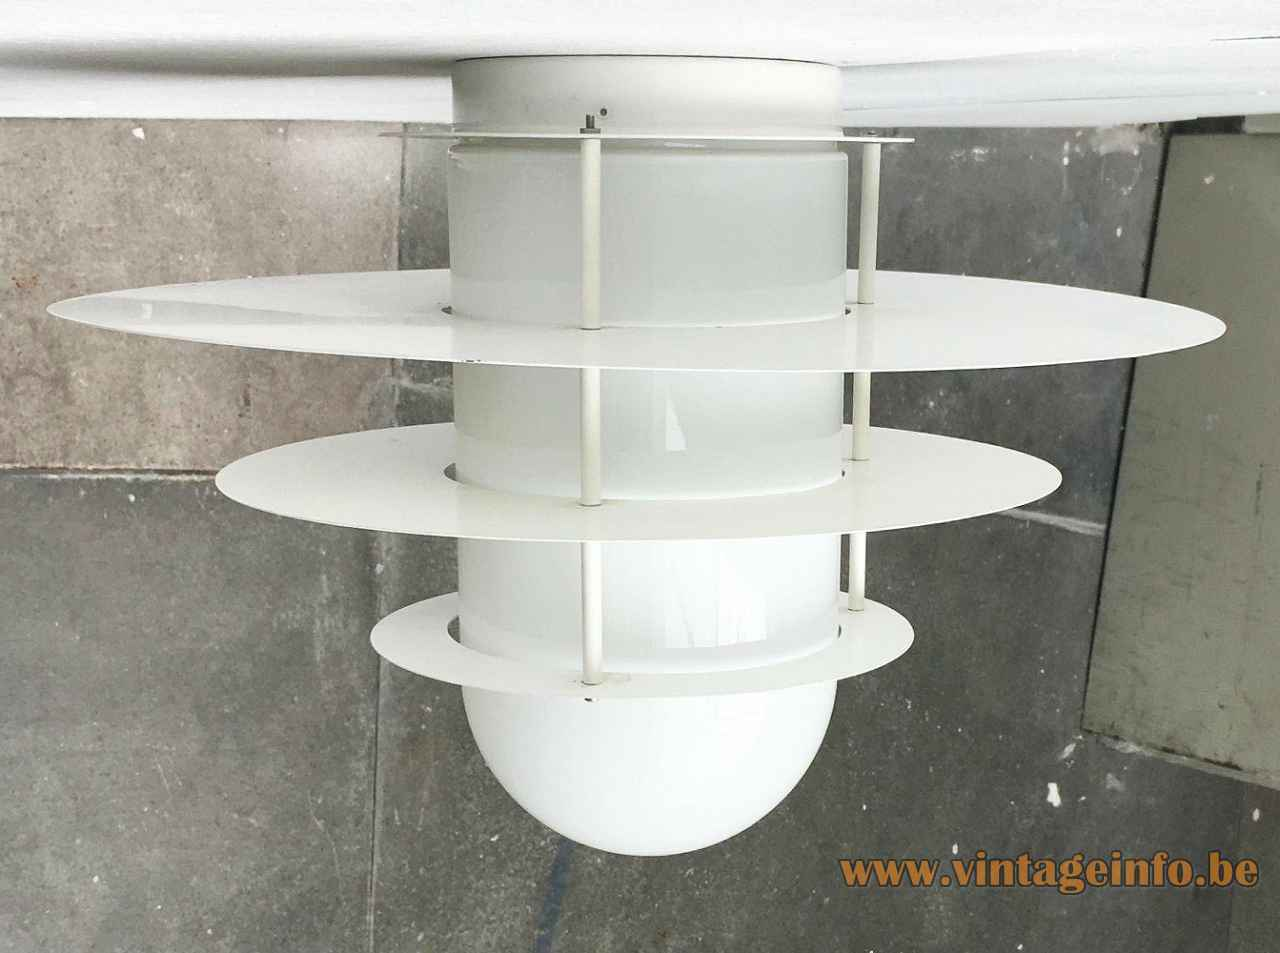 Raak four sons of Aymon flush mount round metal discs lampshade opal glass diffuser 1970s 1980s